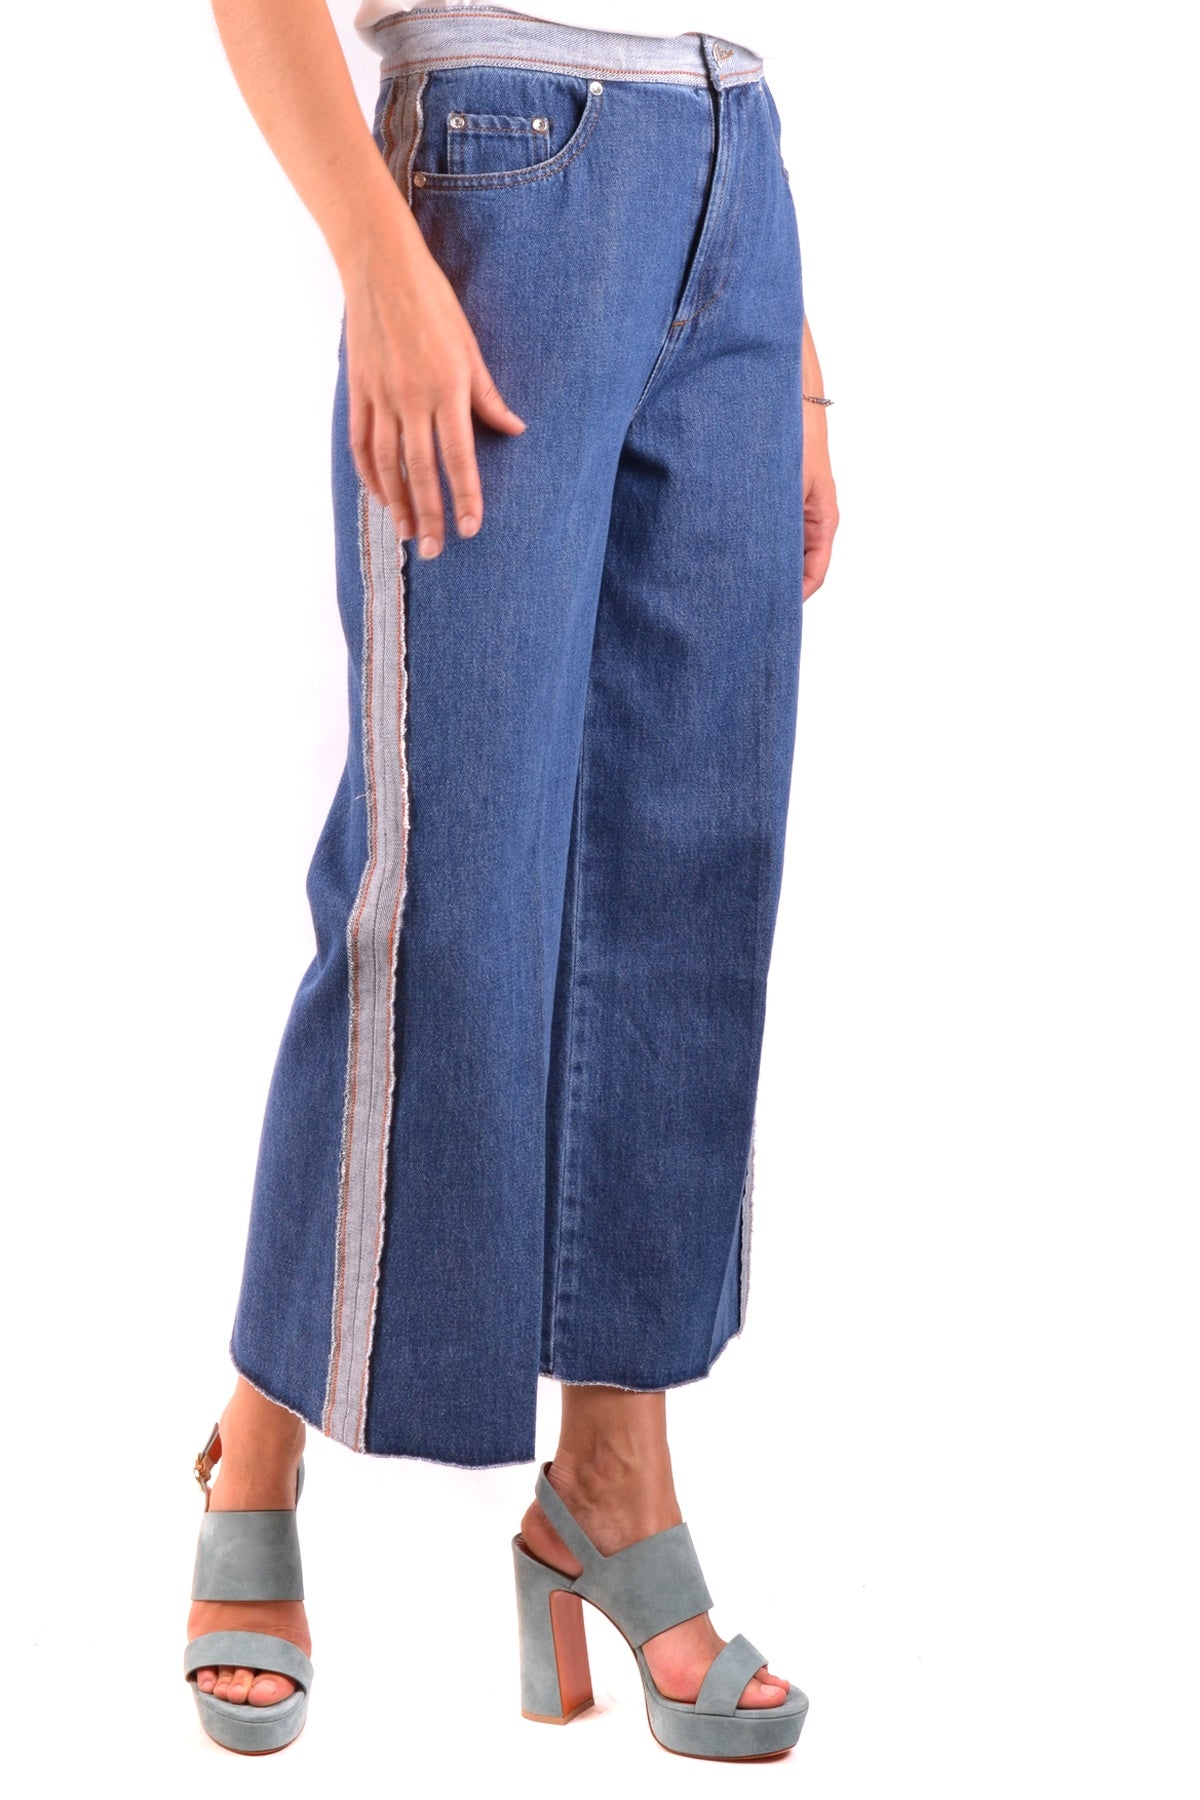 Jeans R.E.D. Valentino-Jeans - WOMAN-Product Details Terms: New With LabelYear: 2018Main Color: BlueGender: WomanMade In: ItalyManufacturer Part Number: Nr0Dd01USize: ItSeason: Spring / SummerClothing Type: JeansComposition: Cotton 100%-Keyomi-Sook